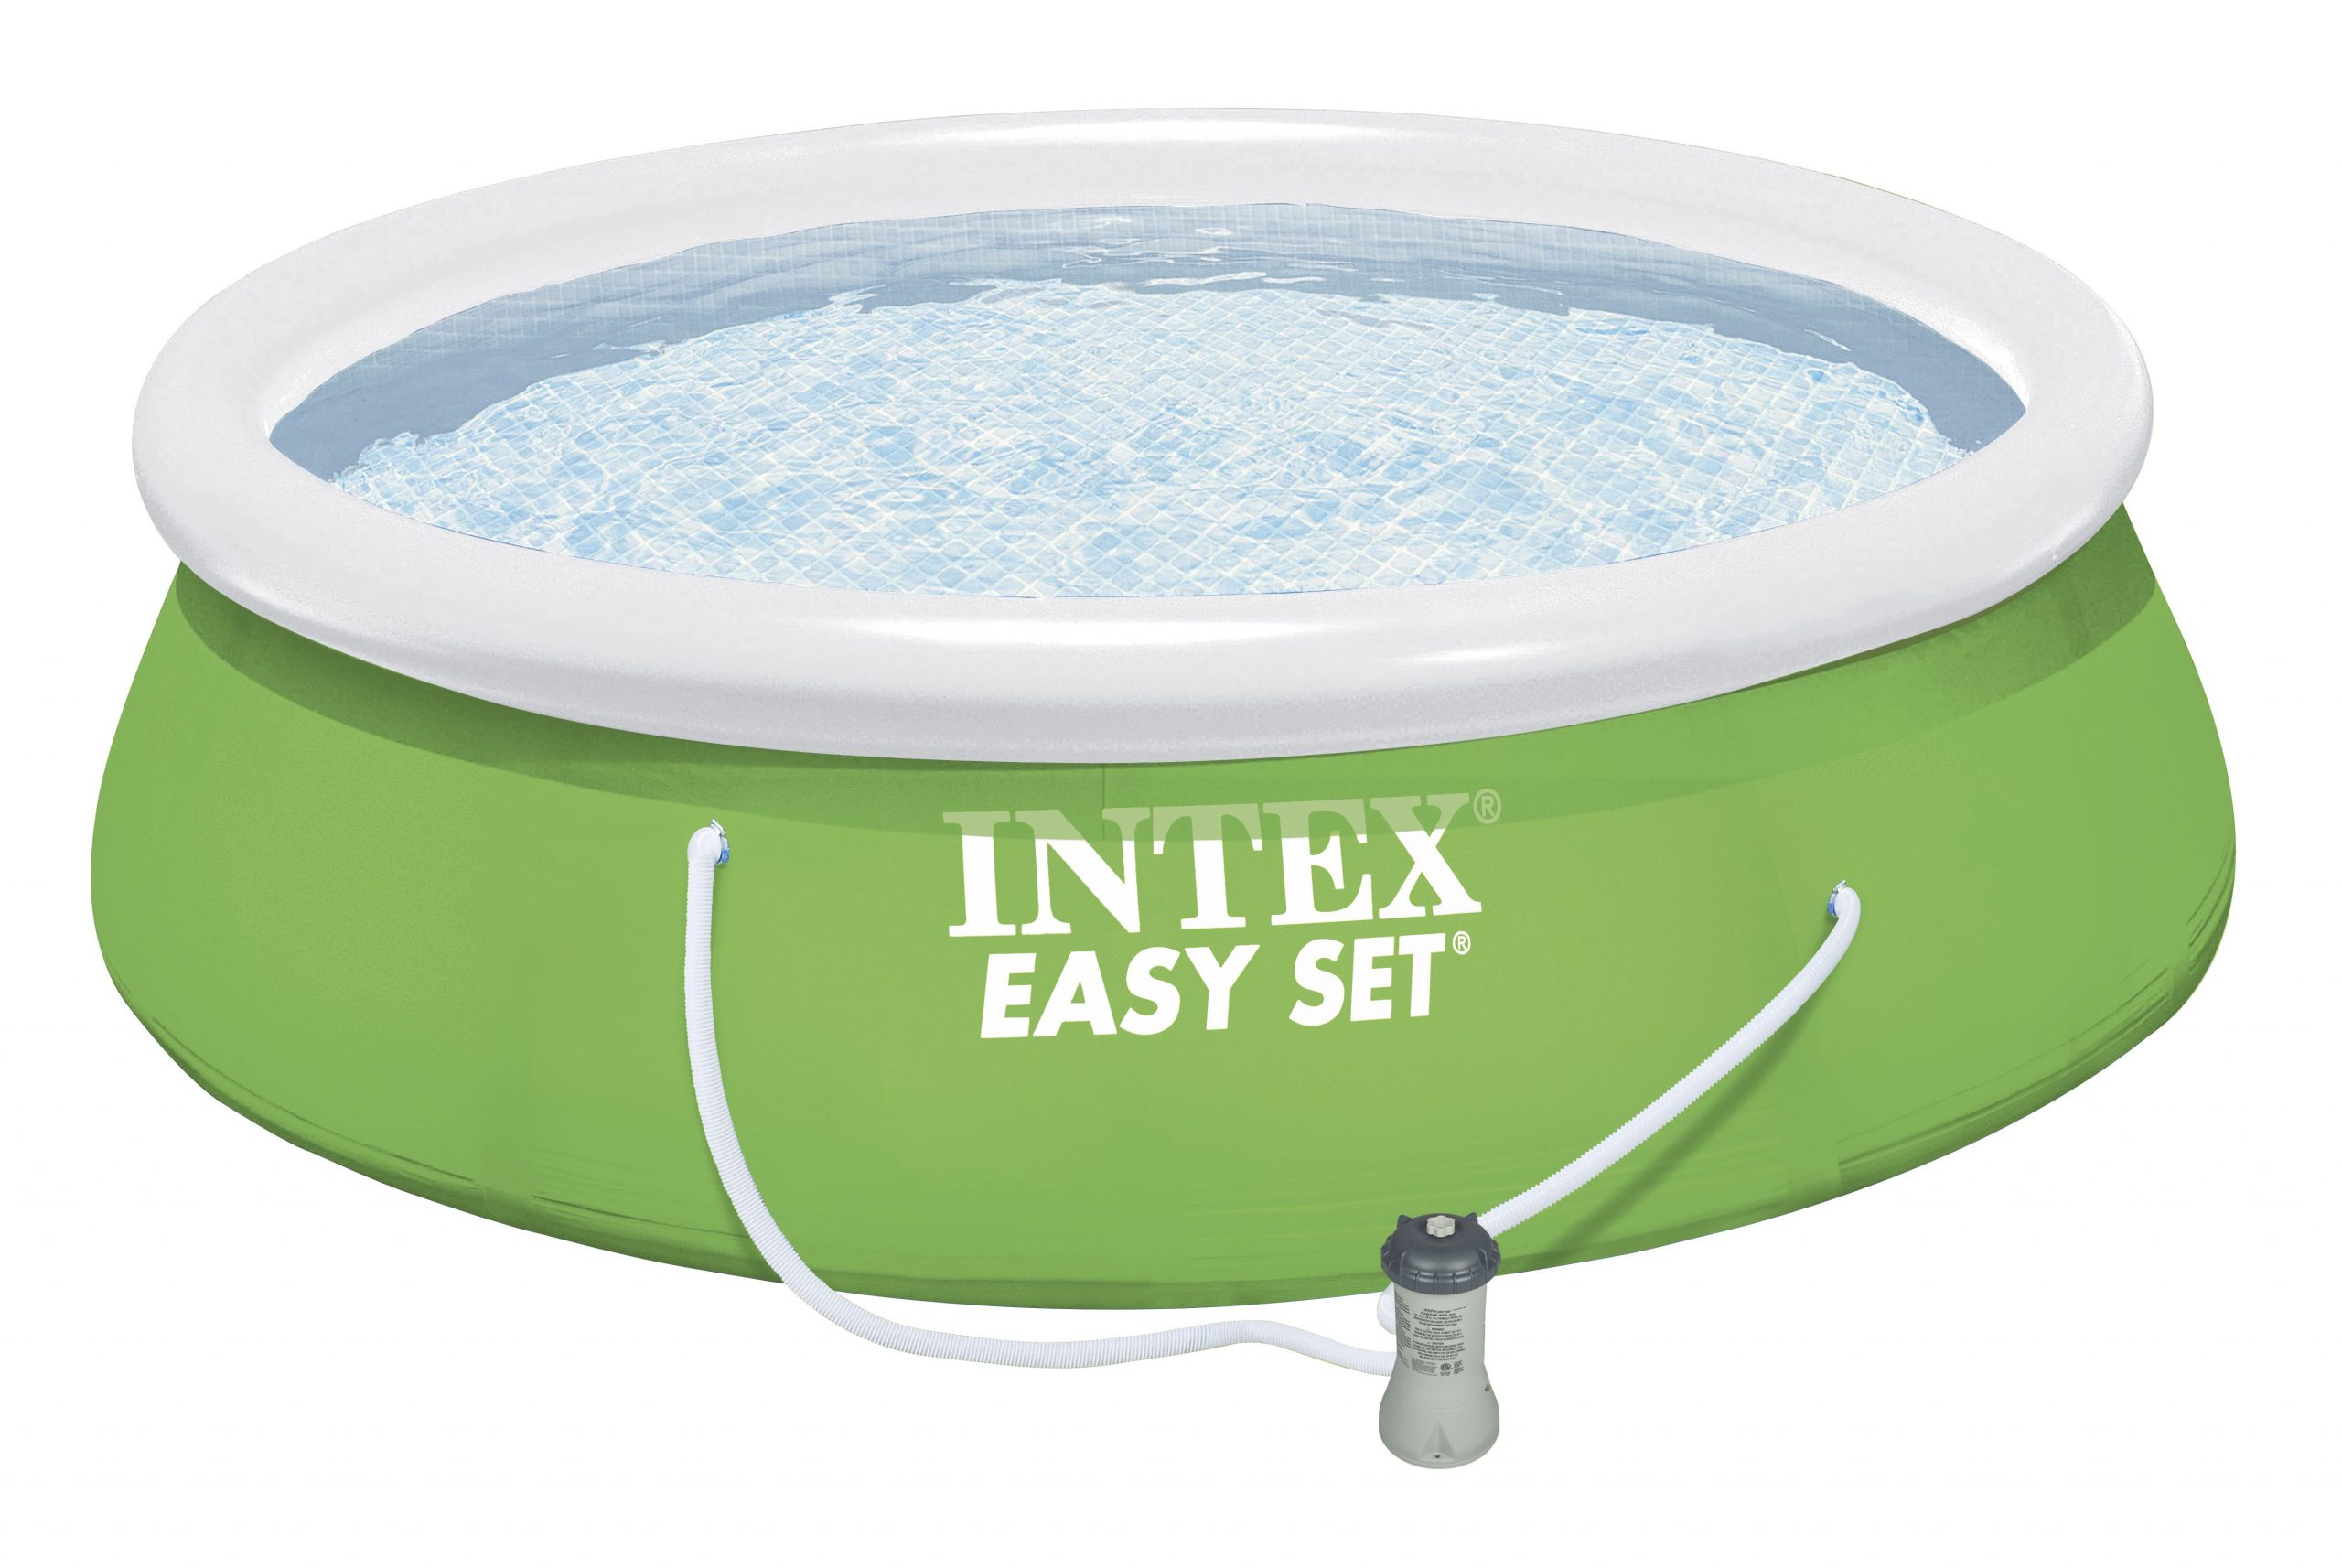 Piscine Autoportante Gonflable Suppression Intex Diam.3.66 M X H.0.84 M intérieur Piscine Autoportée Leroy Merlin